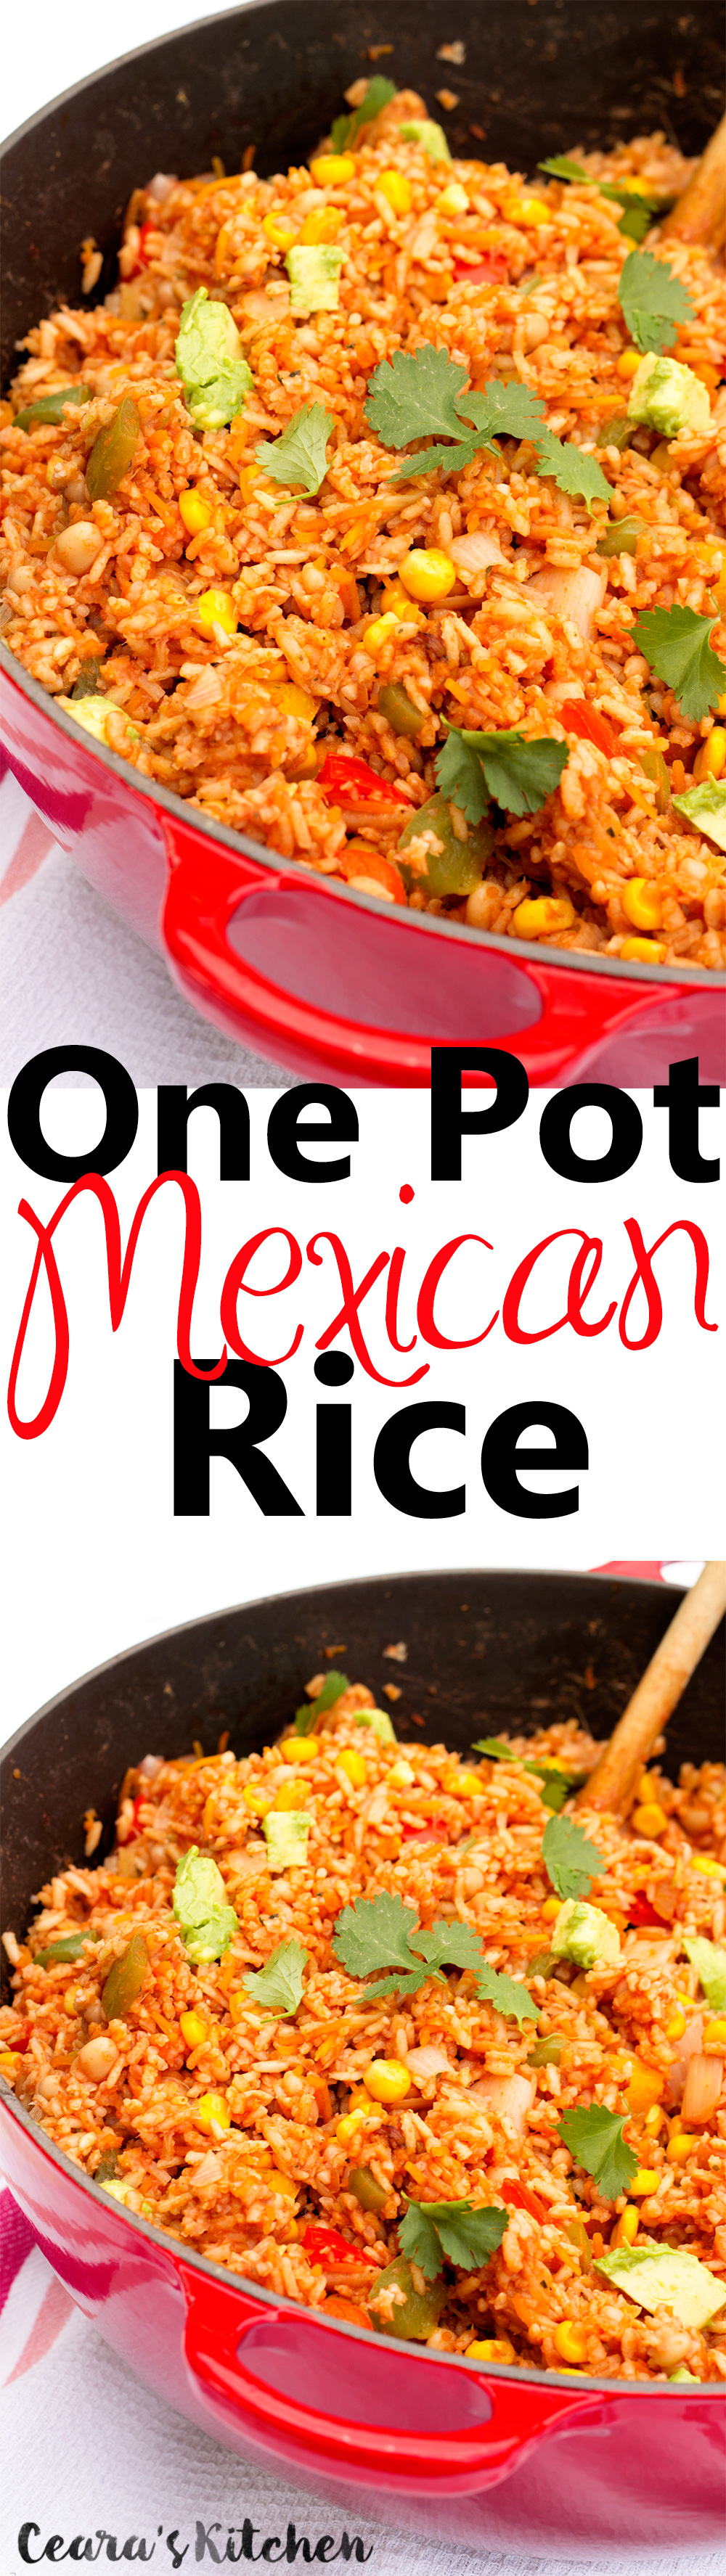 Easy One Pot Mexican Rice Vegan Gluten Free recipe